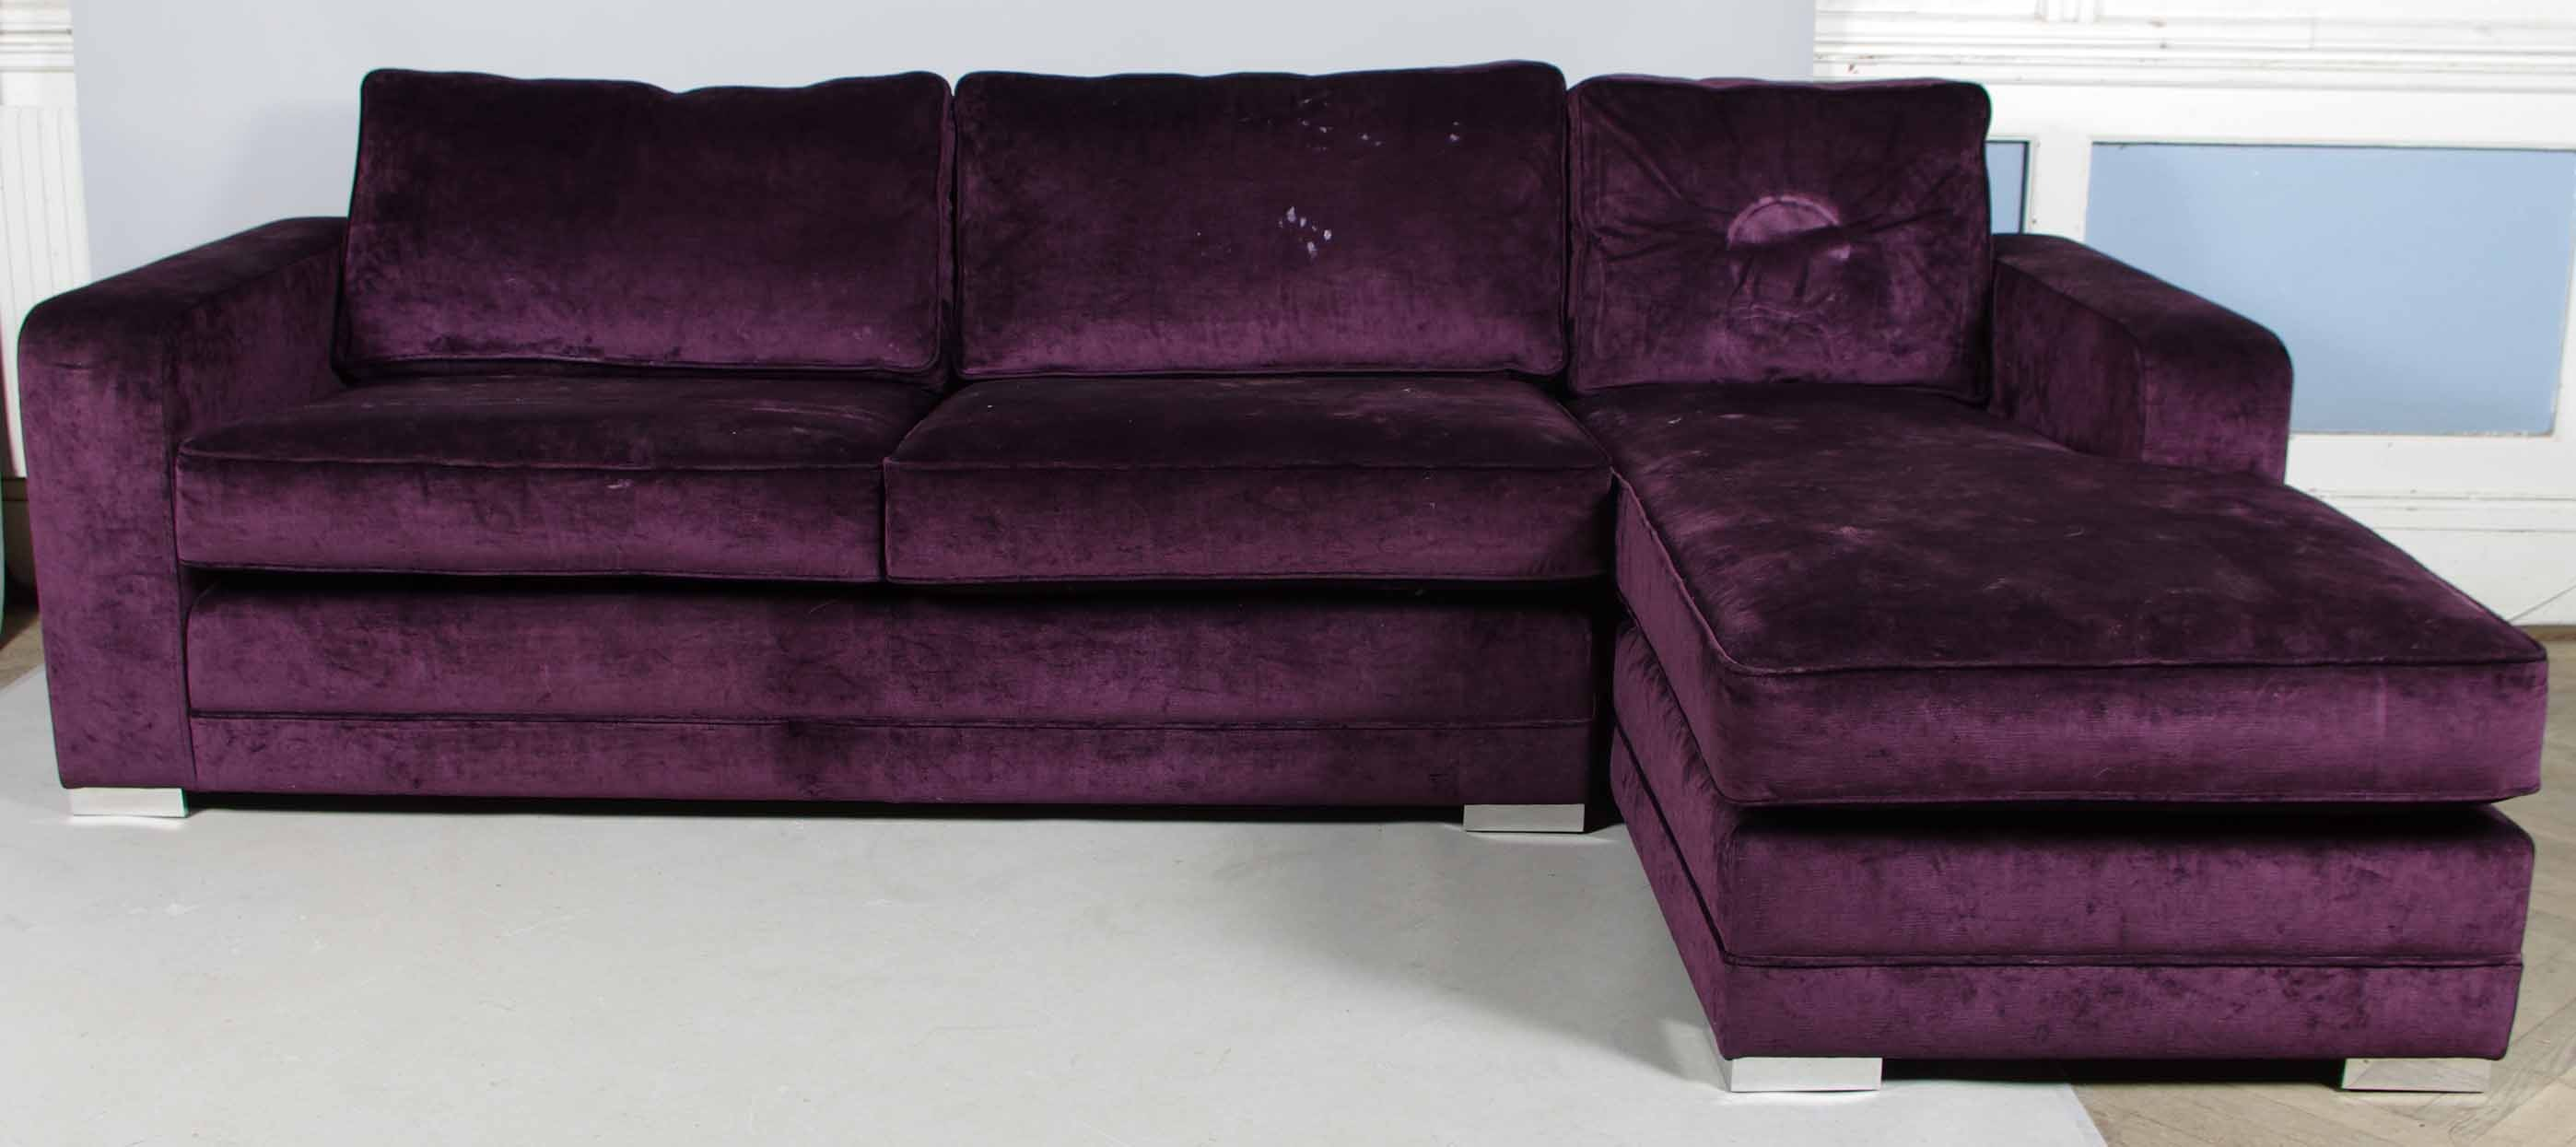 Lila Couch Divansoffa Lila Plysch Furniture Sofas Seatings Auctionet